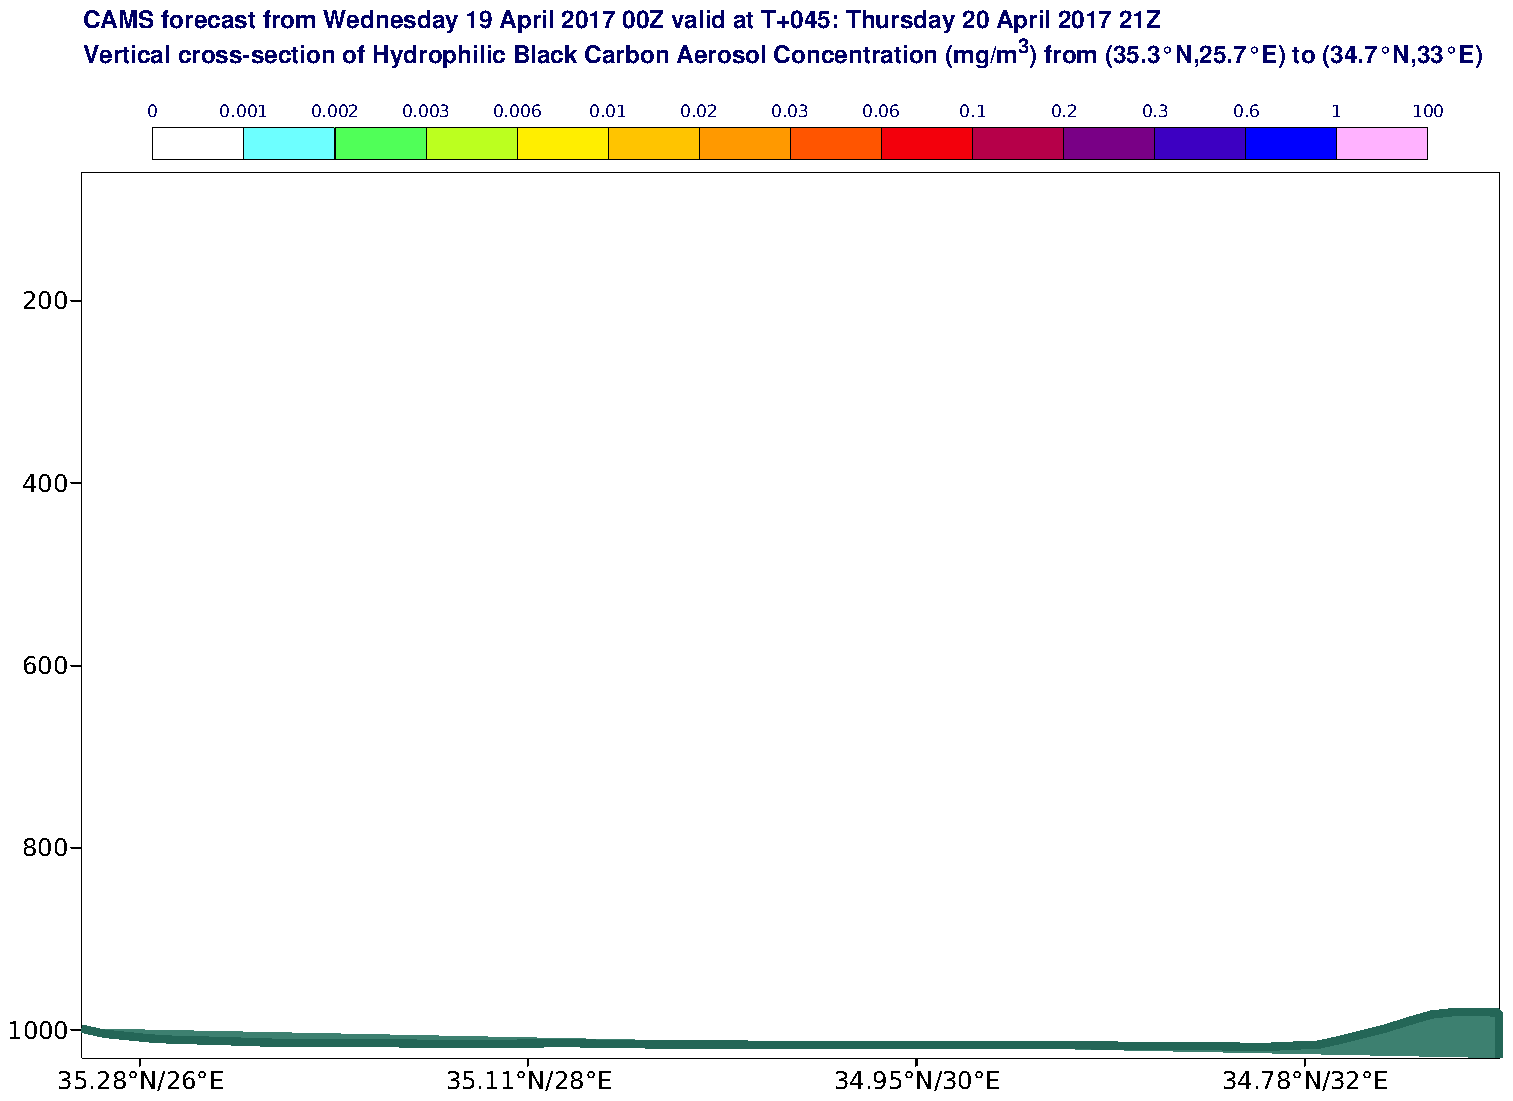 Vertical cross-section of Hydrophilic Black Carbon Aerosol Concentration (mg/m3) valid at T45 - 2017-04-20 21:00